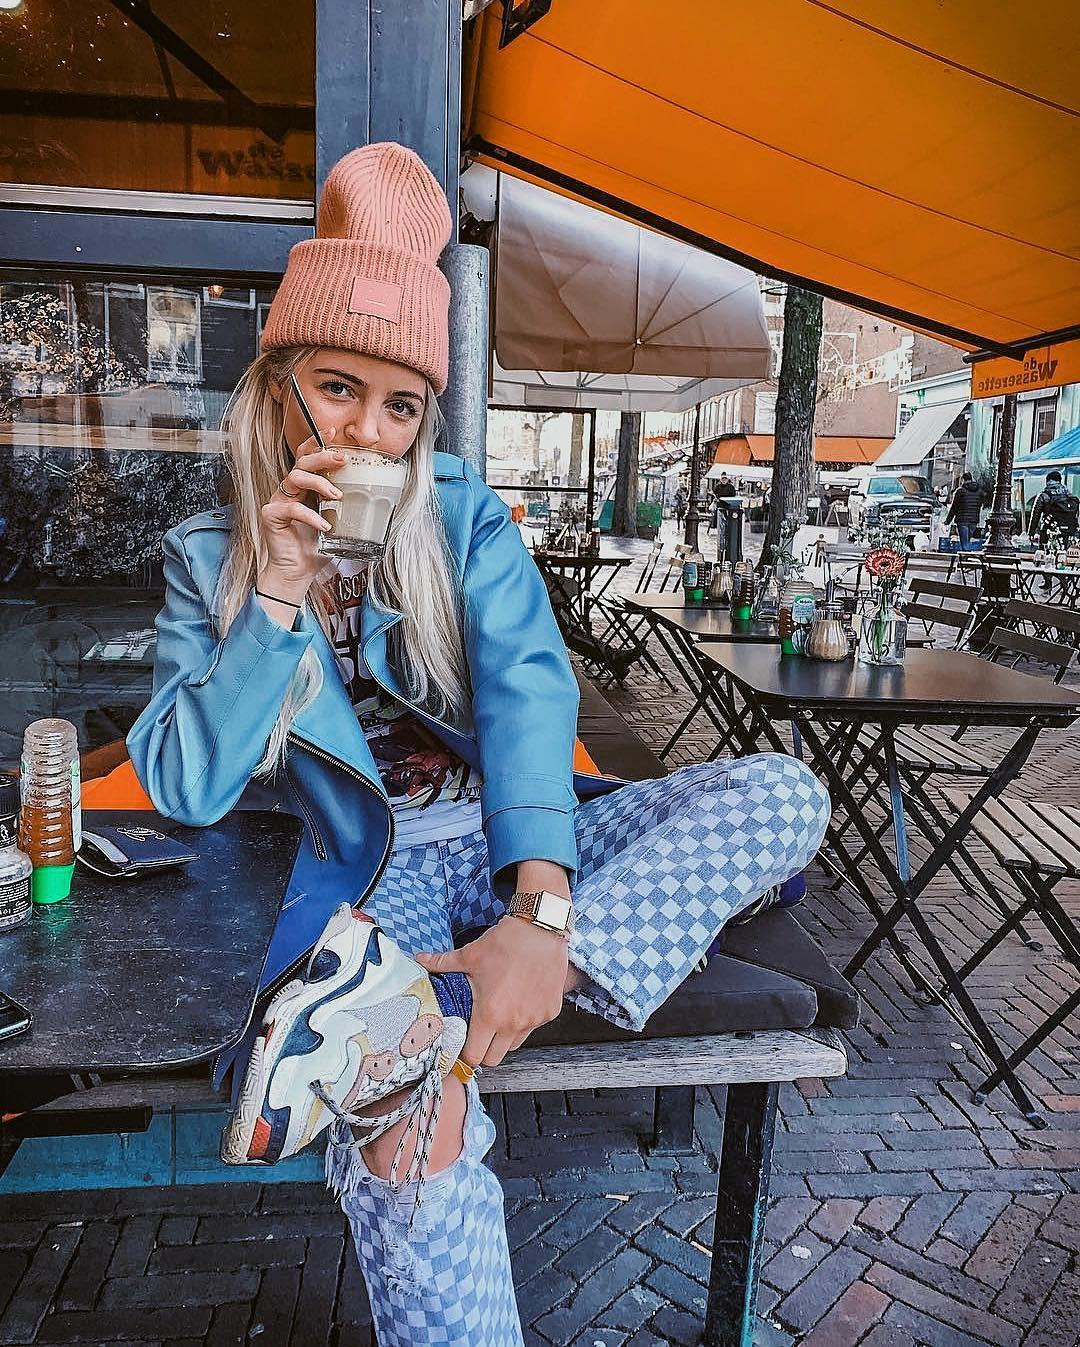 Ugly Sneakers With Gingham Jeans, Printed Top, Blue Leather Jacket And Camel Beanie 2019